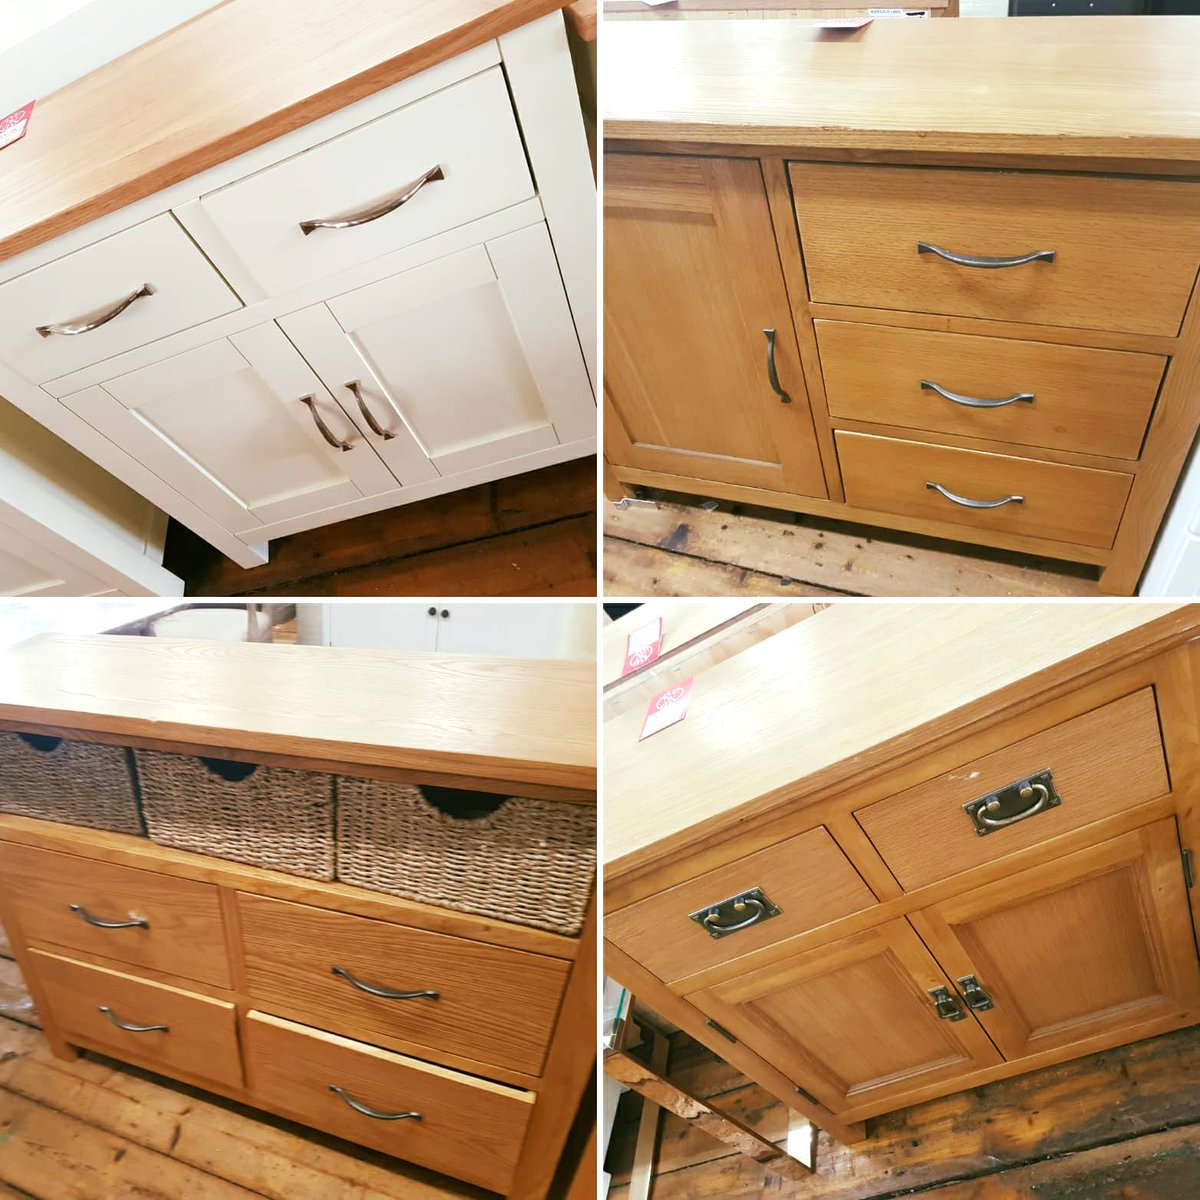 Find A Fantastic Range Of High Quality, Affordable Furniture. Including  These Great Sideboards Starting From £110!